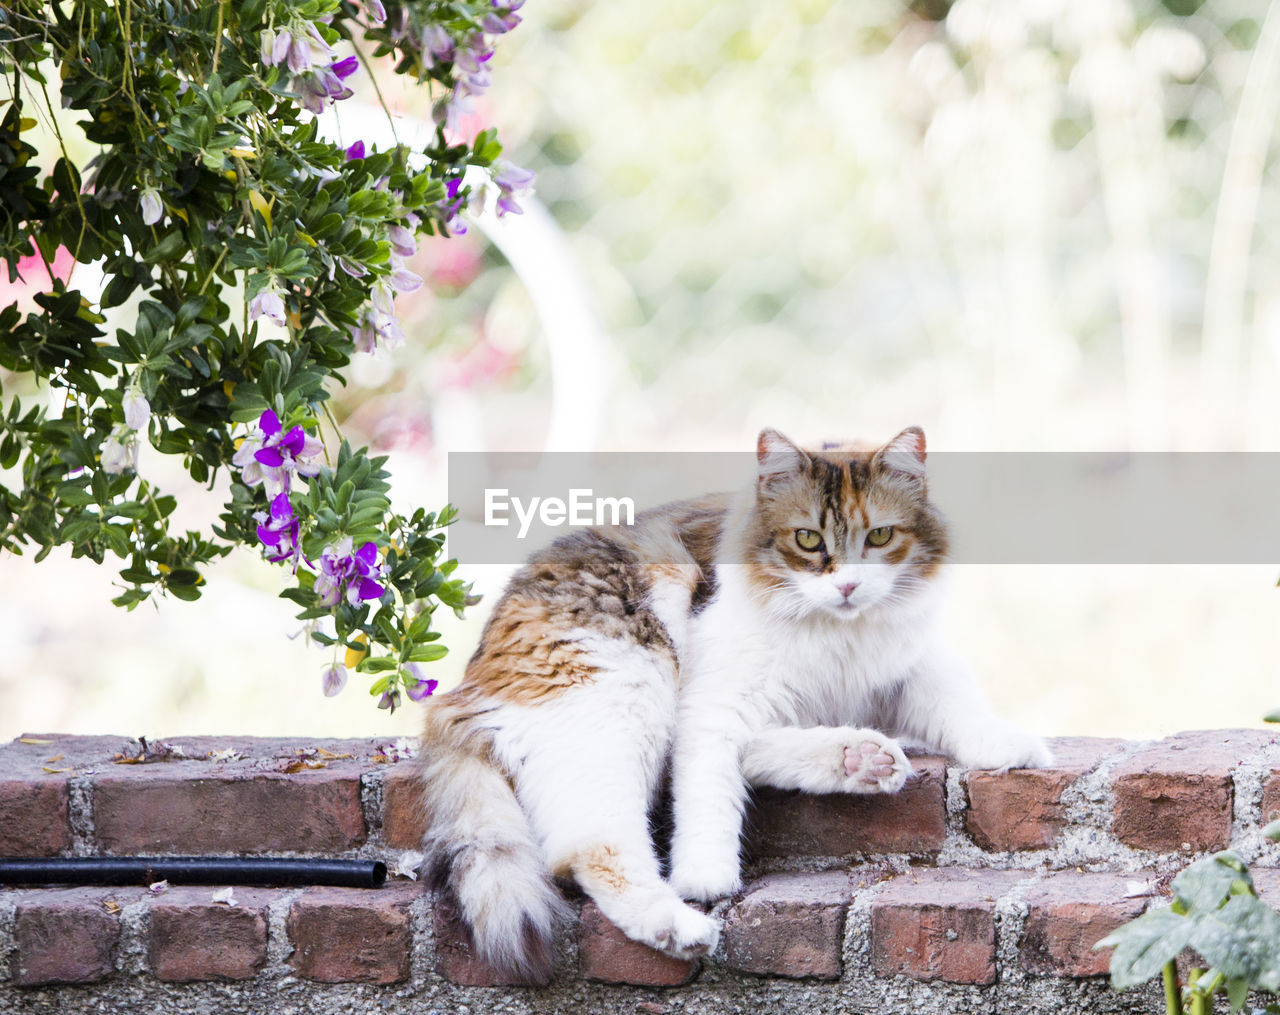 feline, cat, animal themes, mammal, animal, domestic cat, pets, domestic animals, vertebrate, one animal, domestic, plant, flowering plant, no people, wall, flower, relaxation, day, focus on foreground, nature, whisker